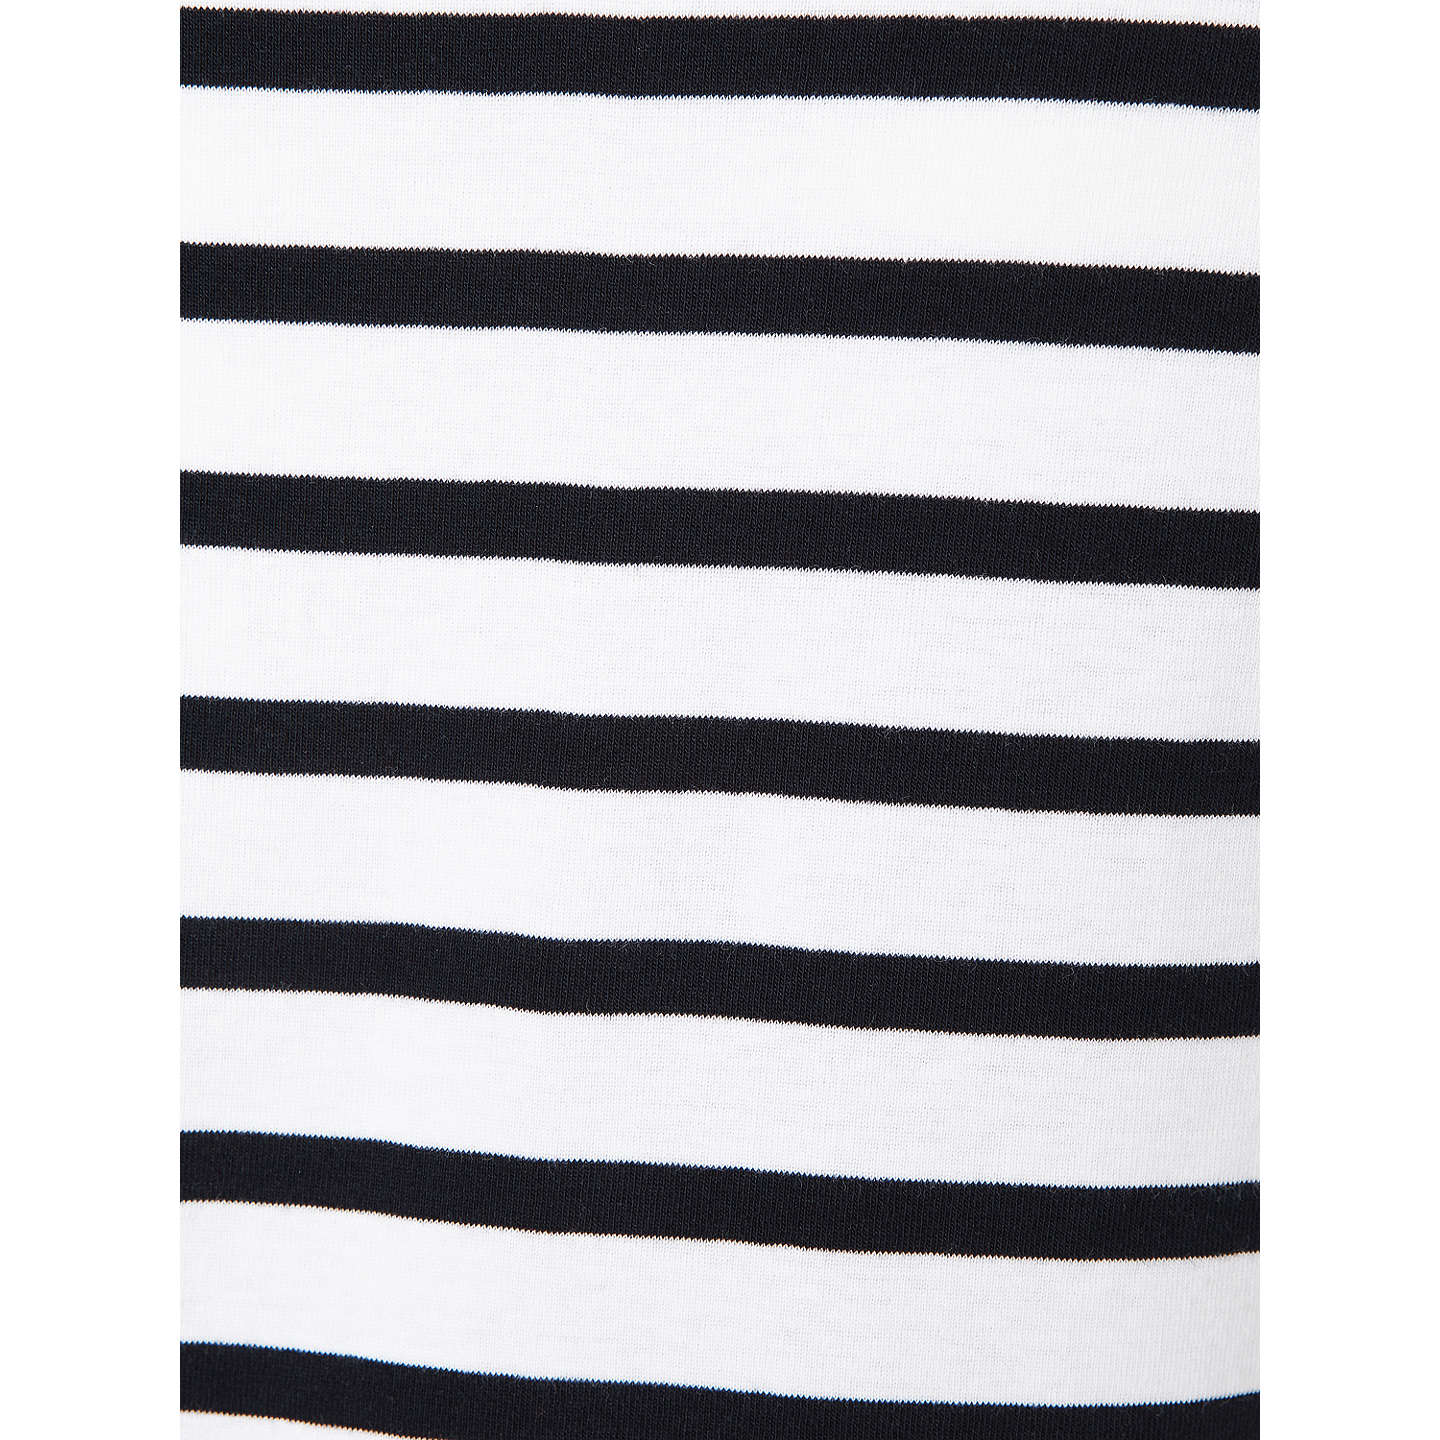 BuyJohn Lewis Half-Sleeve Breton Stripe Top, White/Navy, 8 Online at johnlewis.com